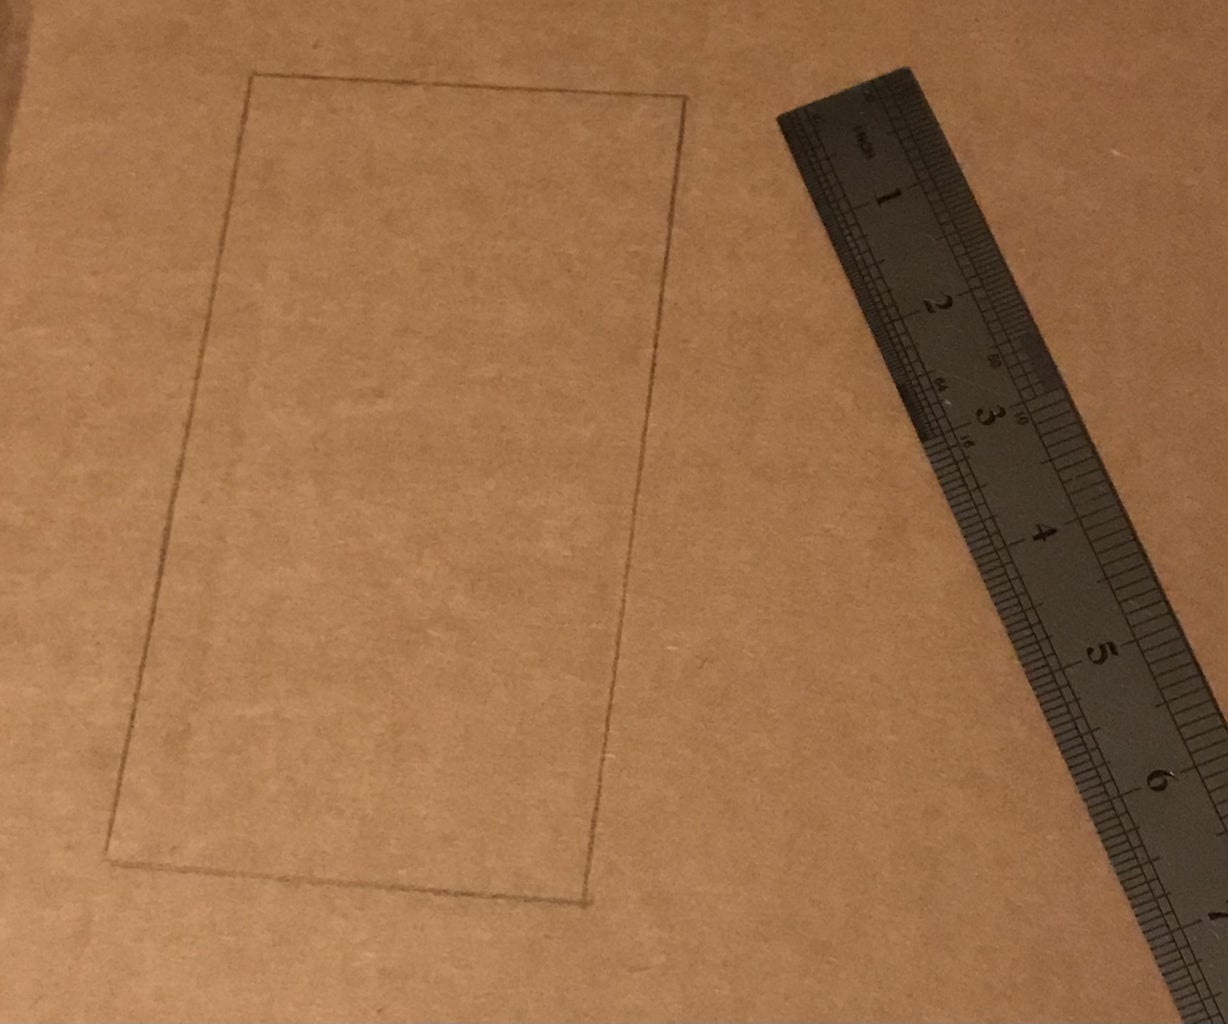 Measuring and Cutting the Holder